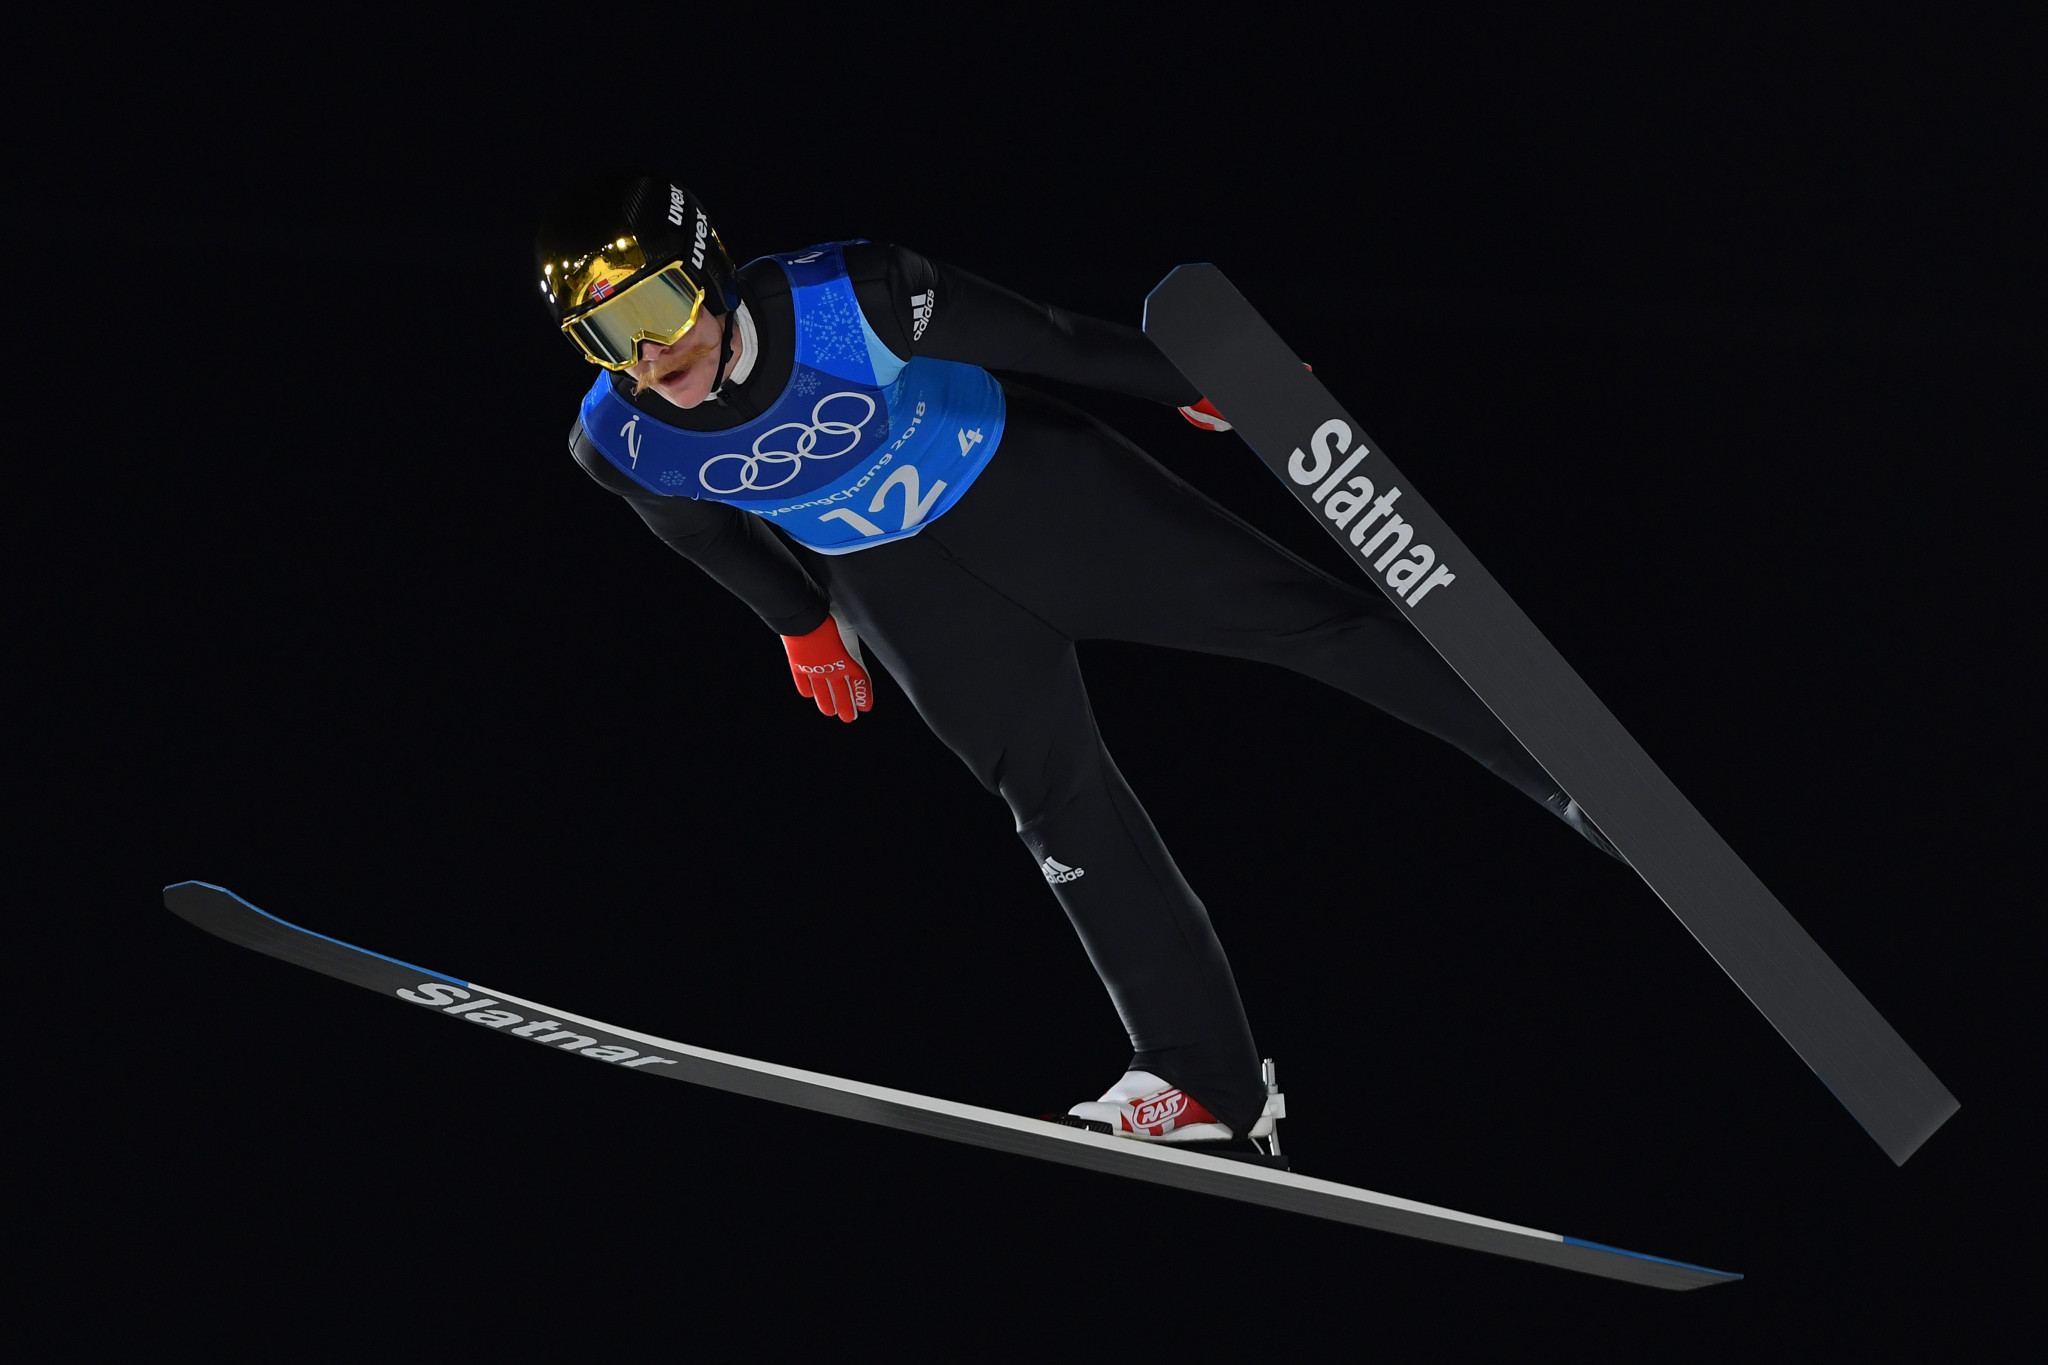 Norway lands team ski jumping gold medal